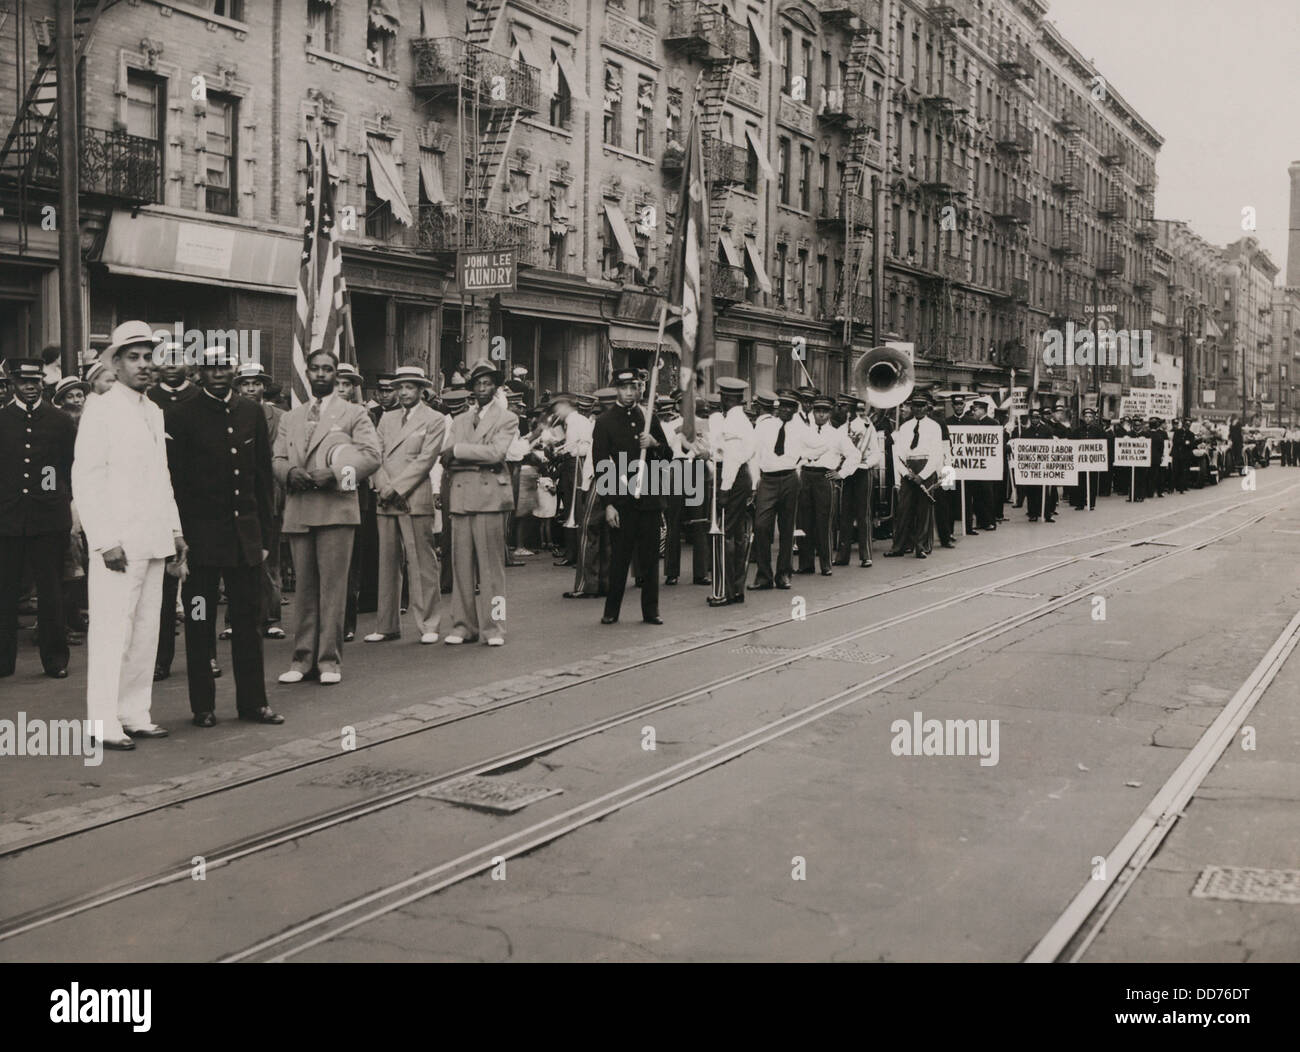 Parade celebrating the 11th anniversary of the Brotherhood of Sleeping Car Porters union, in New York City, 1936. Stock Photo